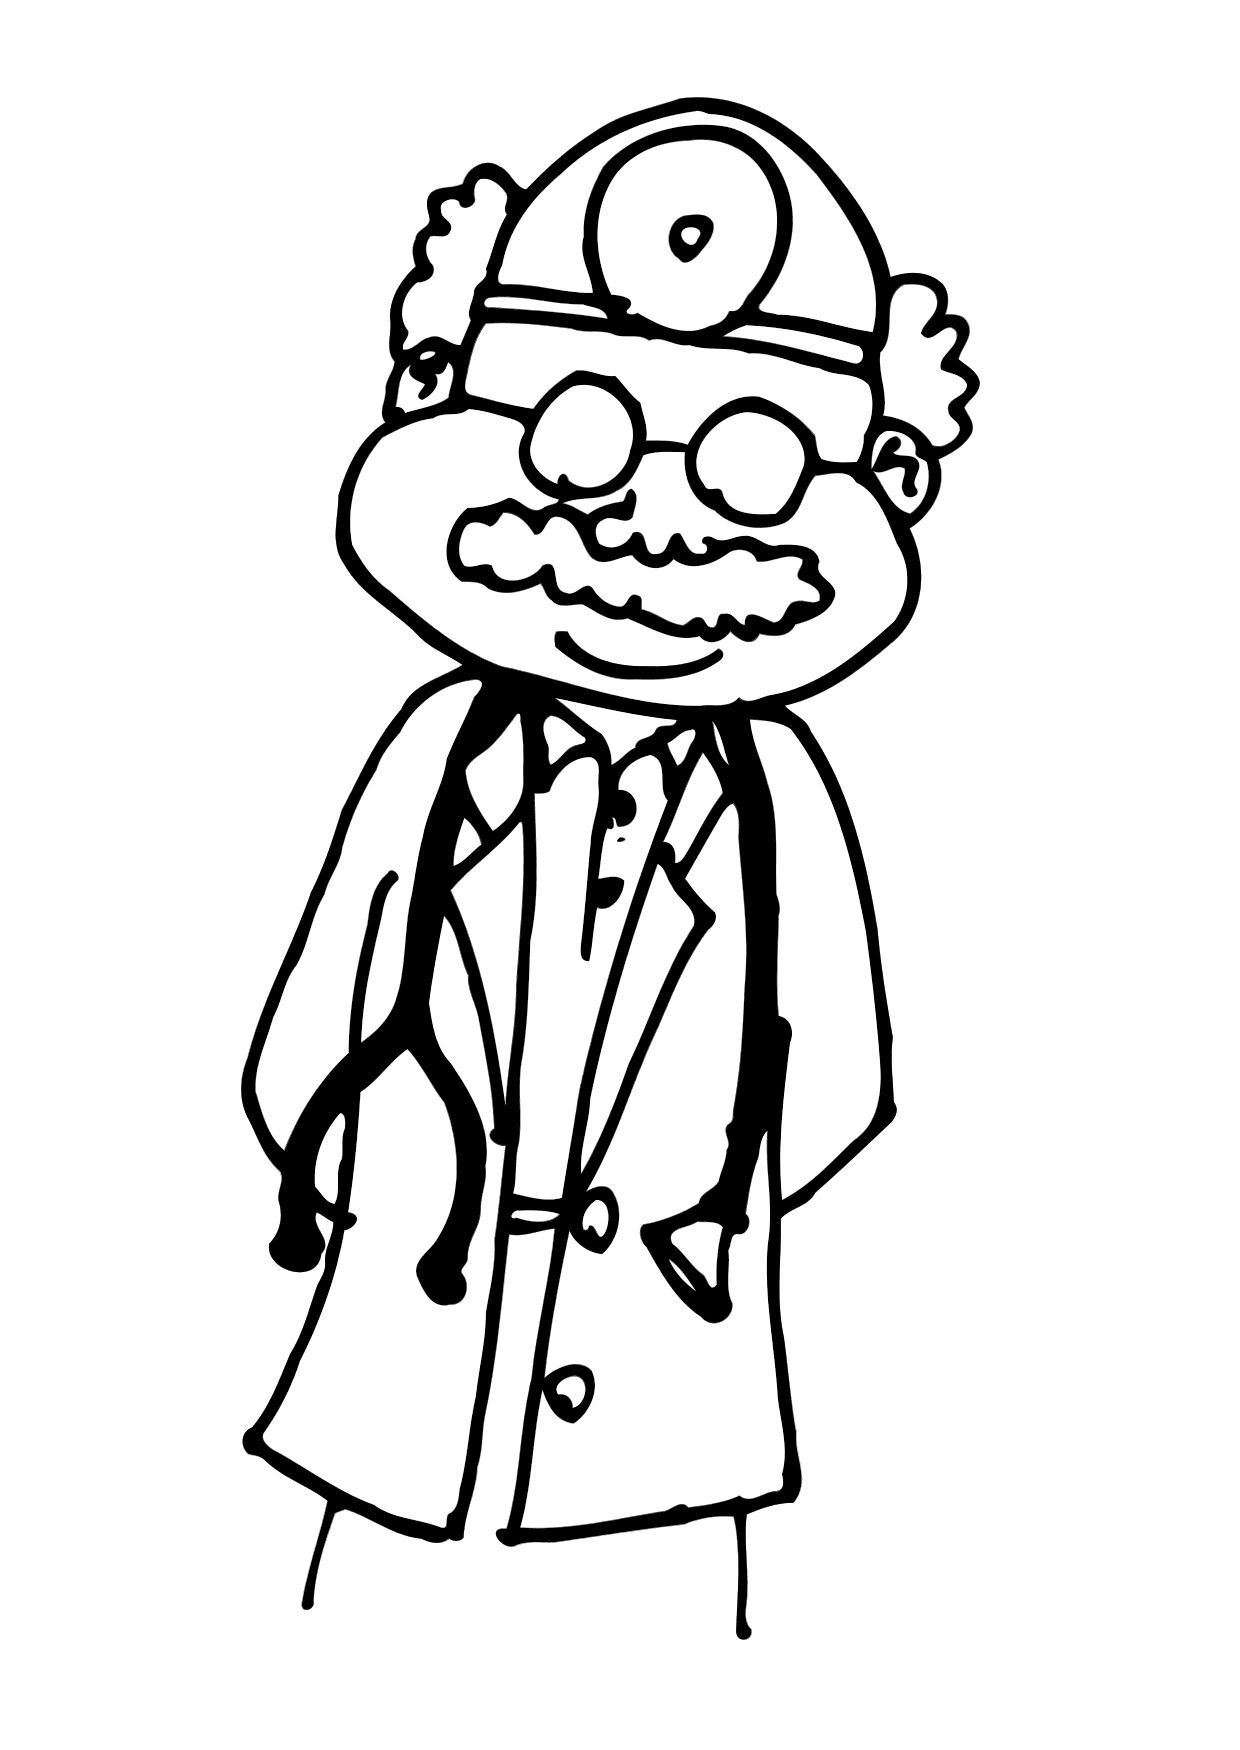 13 Pics of Doctors Visit Coloring Pages - Preschool Doctor ...